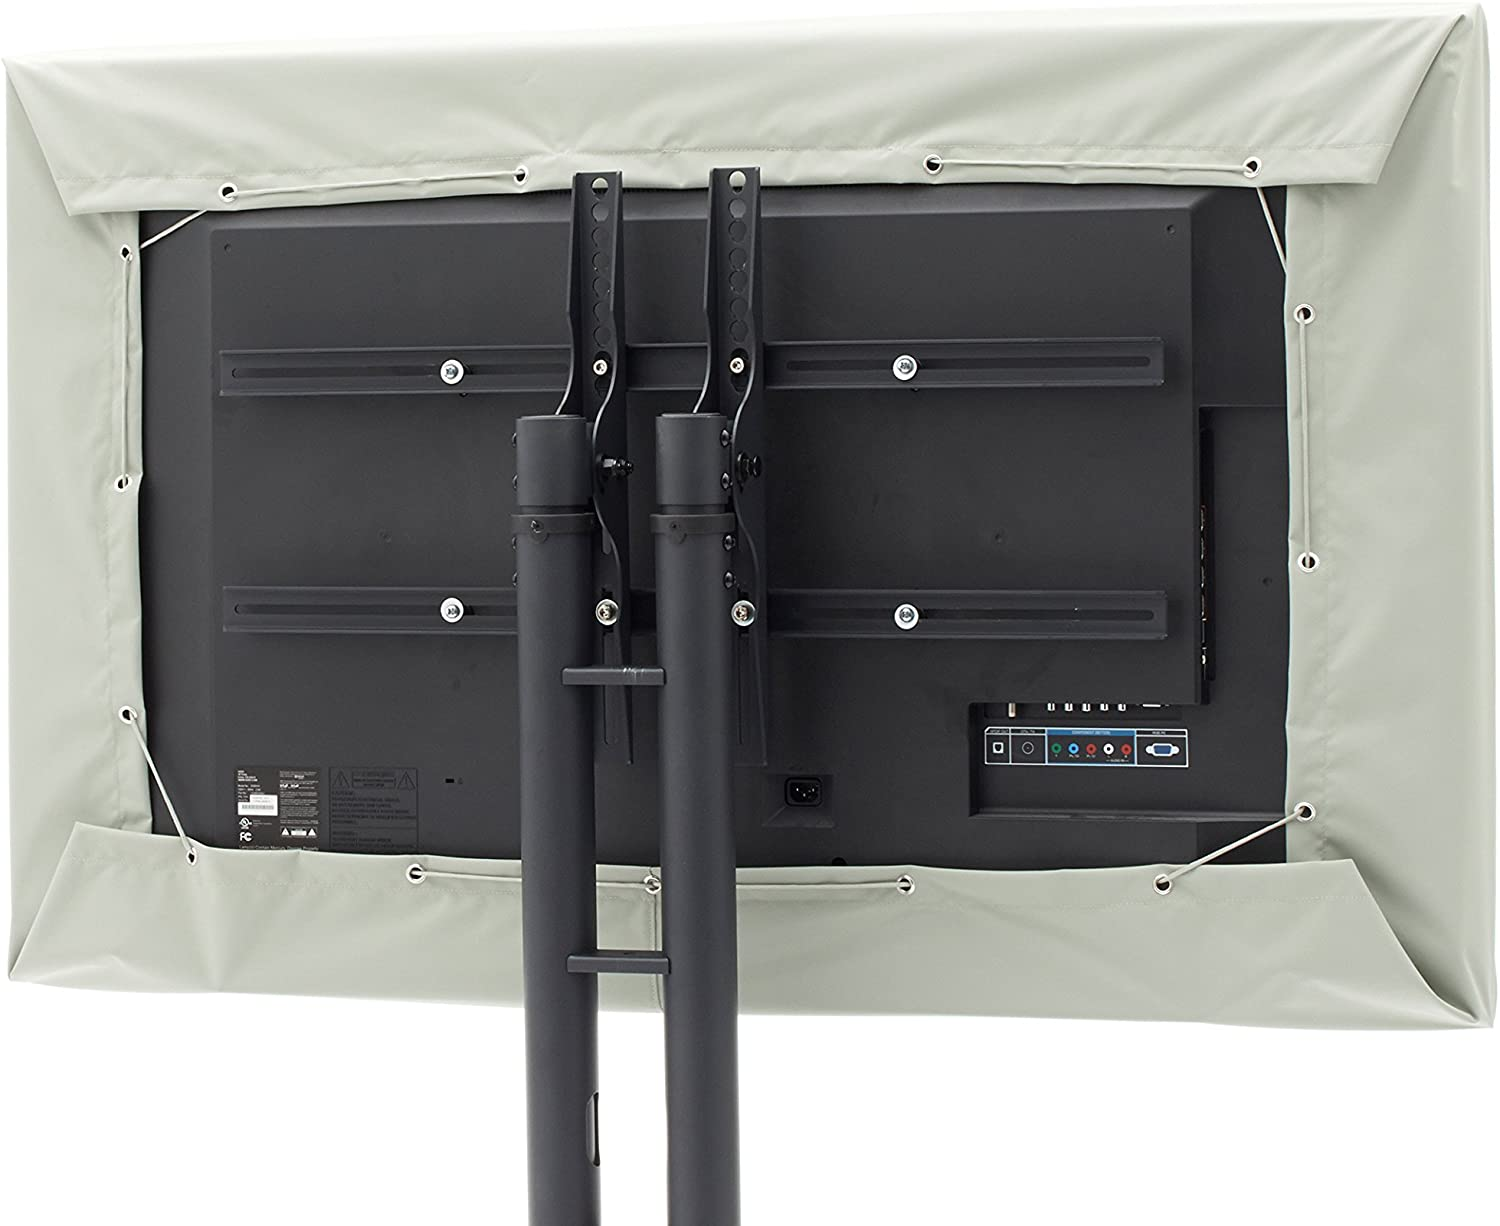 Covermates - Outdoor TV Cover - Fits 22 to 25 Inch TV's - Ultima - 300 Denier Fade Resistant Polyester - Half Coverage - Easy On And Off Draw Cord Closure - 7 Year Warranty - Water Resistant - Sage Green